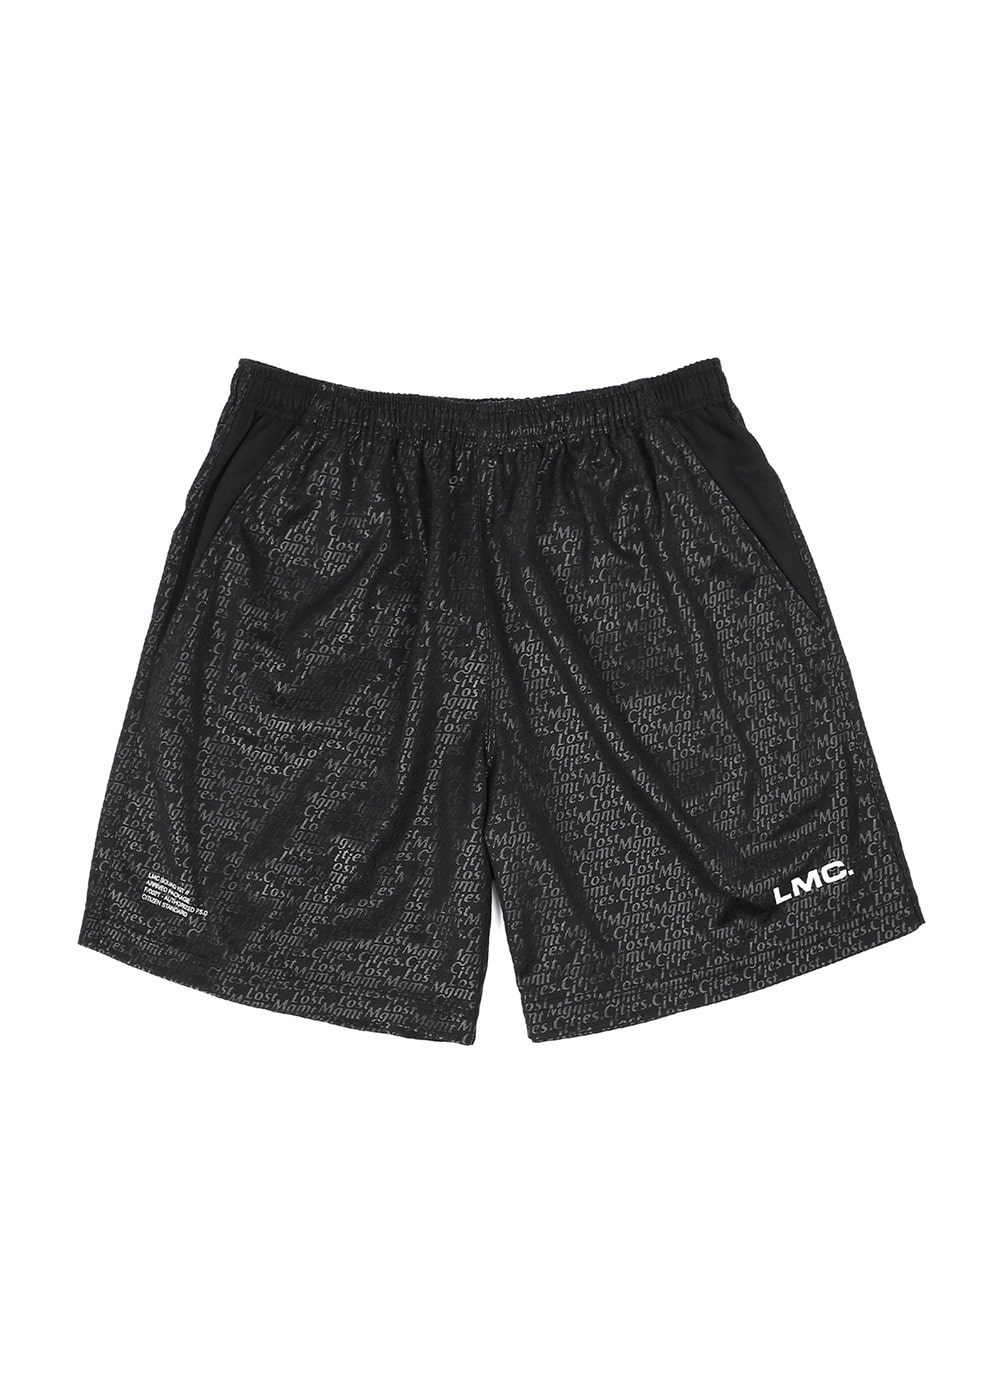 SOCCER JERSEY SHORTS black